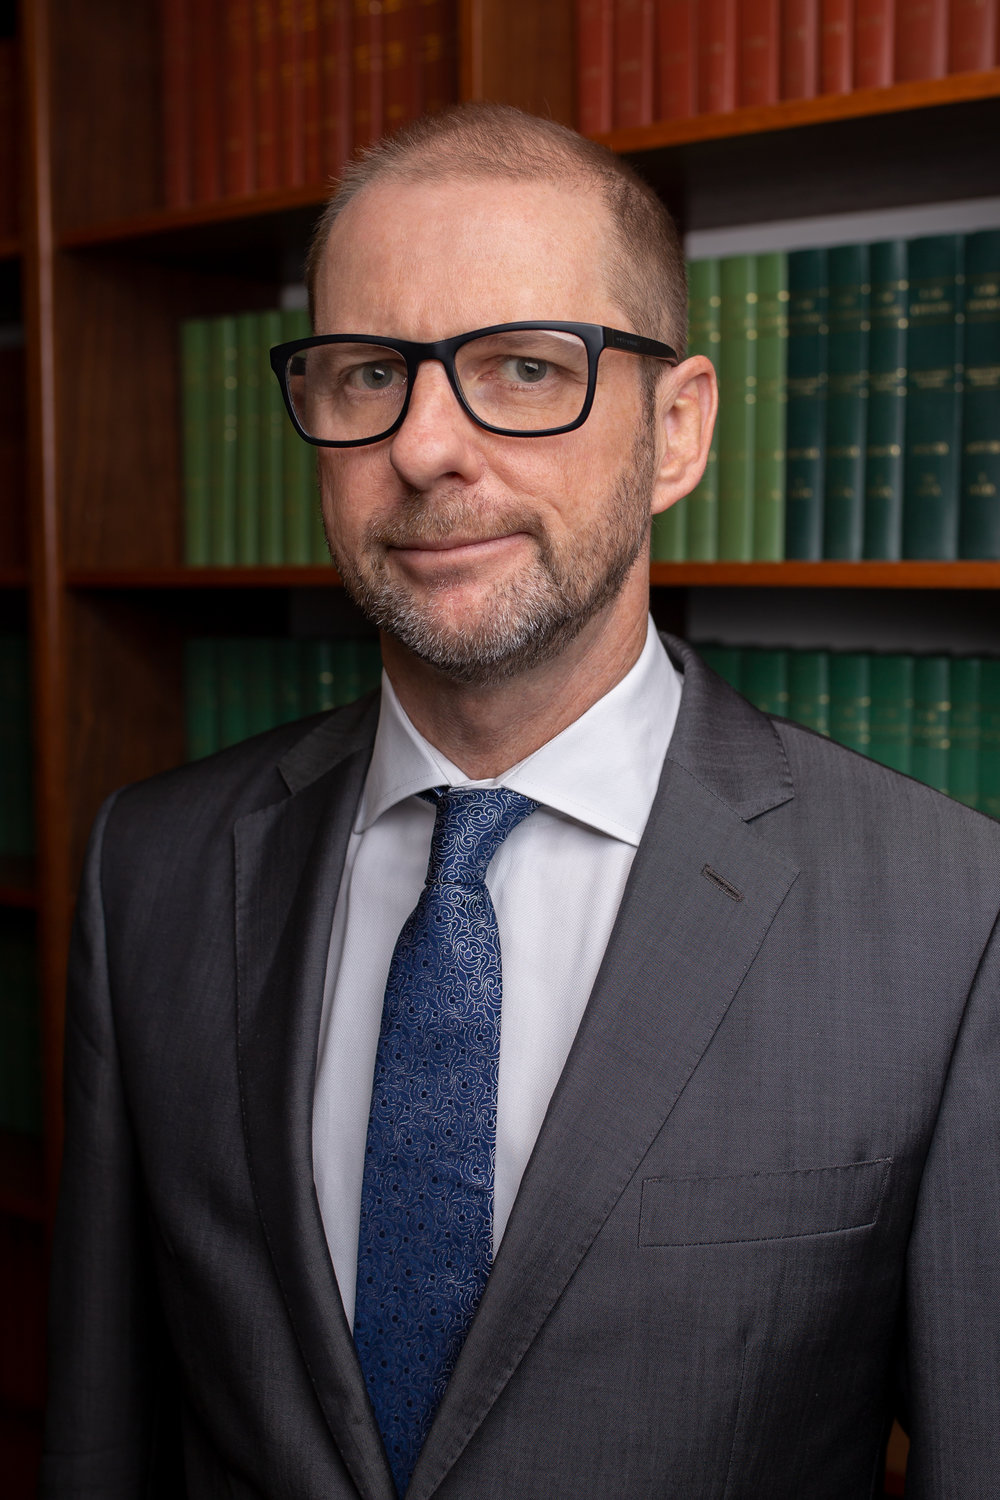 John Dwyer was admitted as a solicitor in 1993. He came to the bar in 2005. He has specialised in the field of employment law his entire career.   He has been a casual lecturer at the QUT legal practice course since 1995 and lectures in the areas of advocacy and employment law.   He has been a member of the Q-Comp barristers panel since 2008.